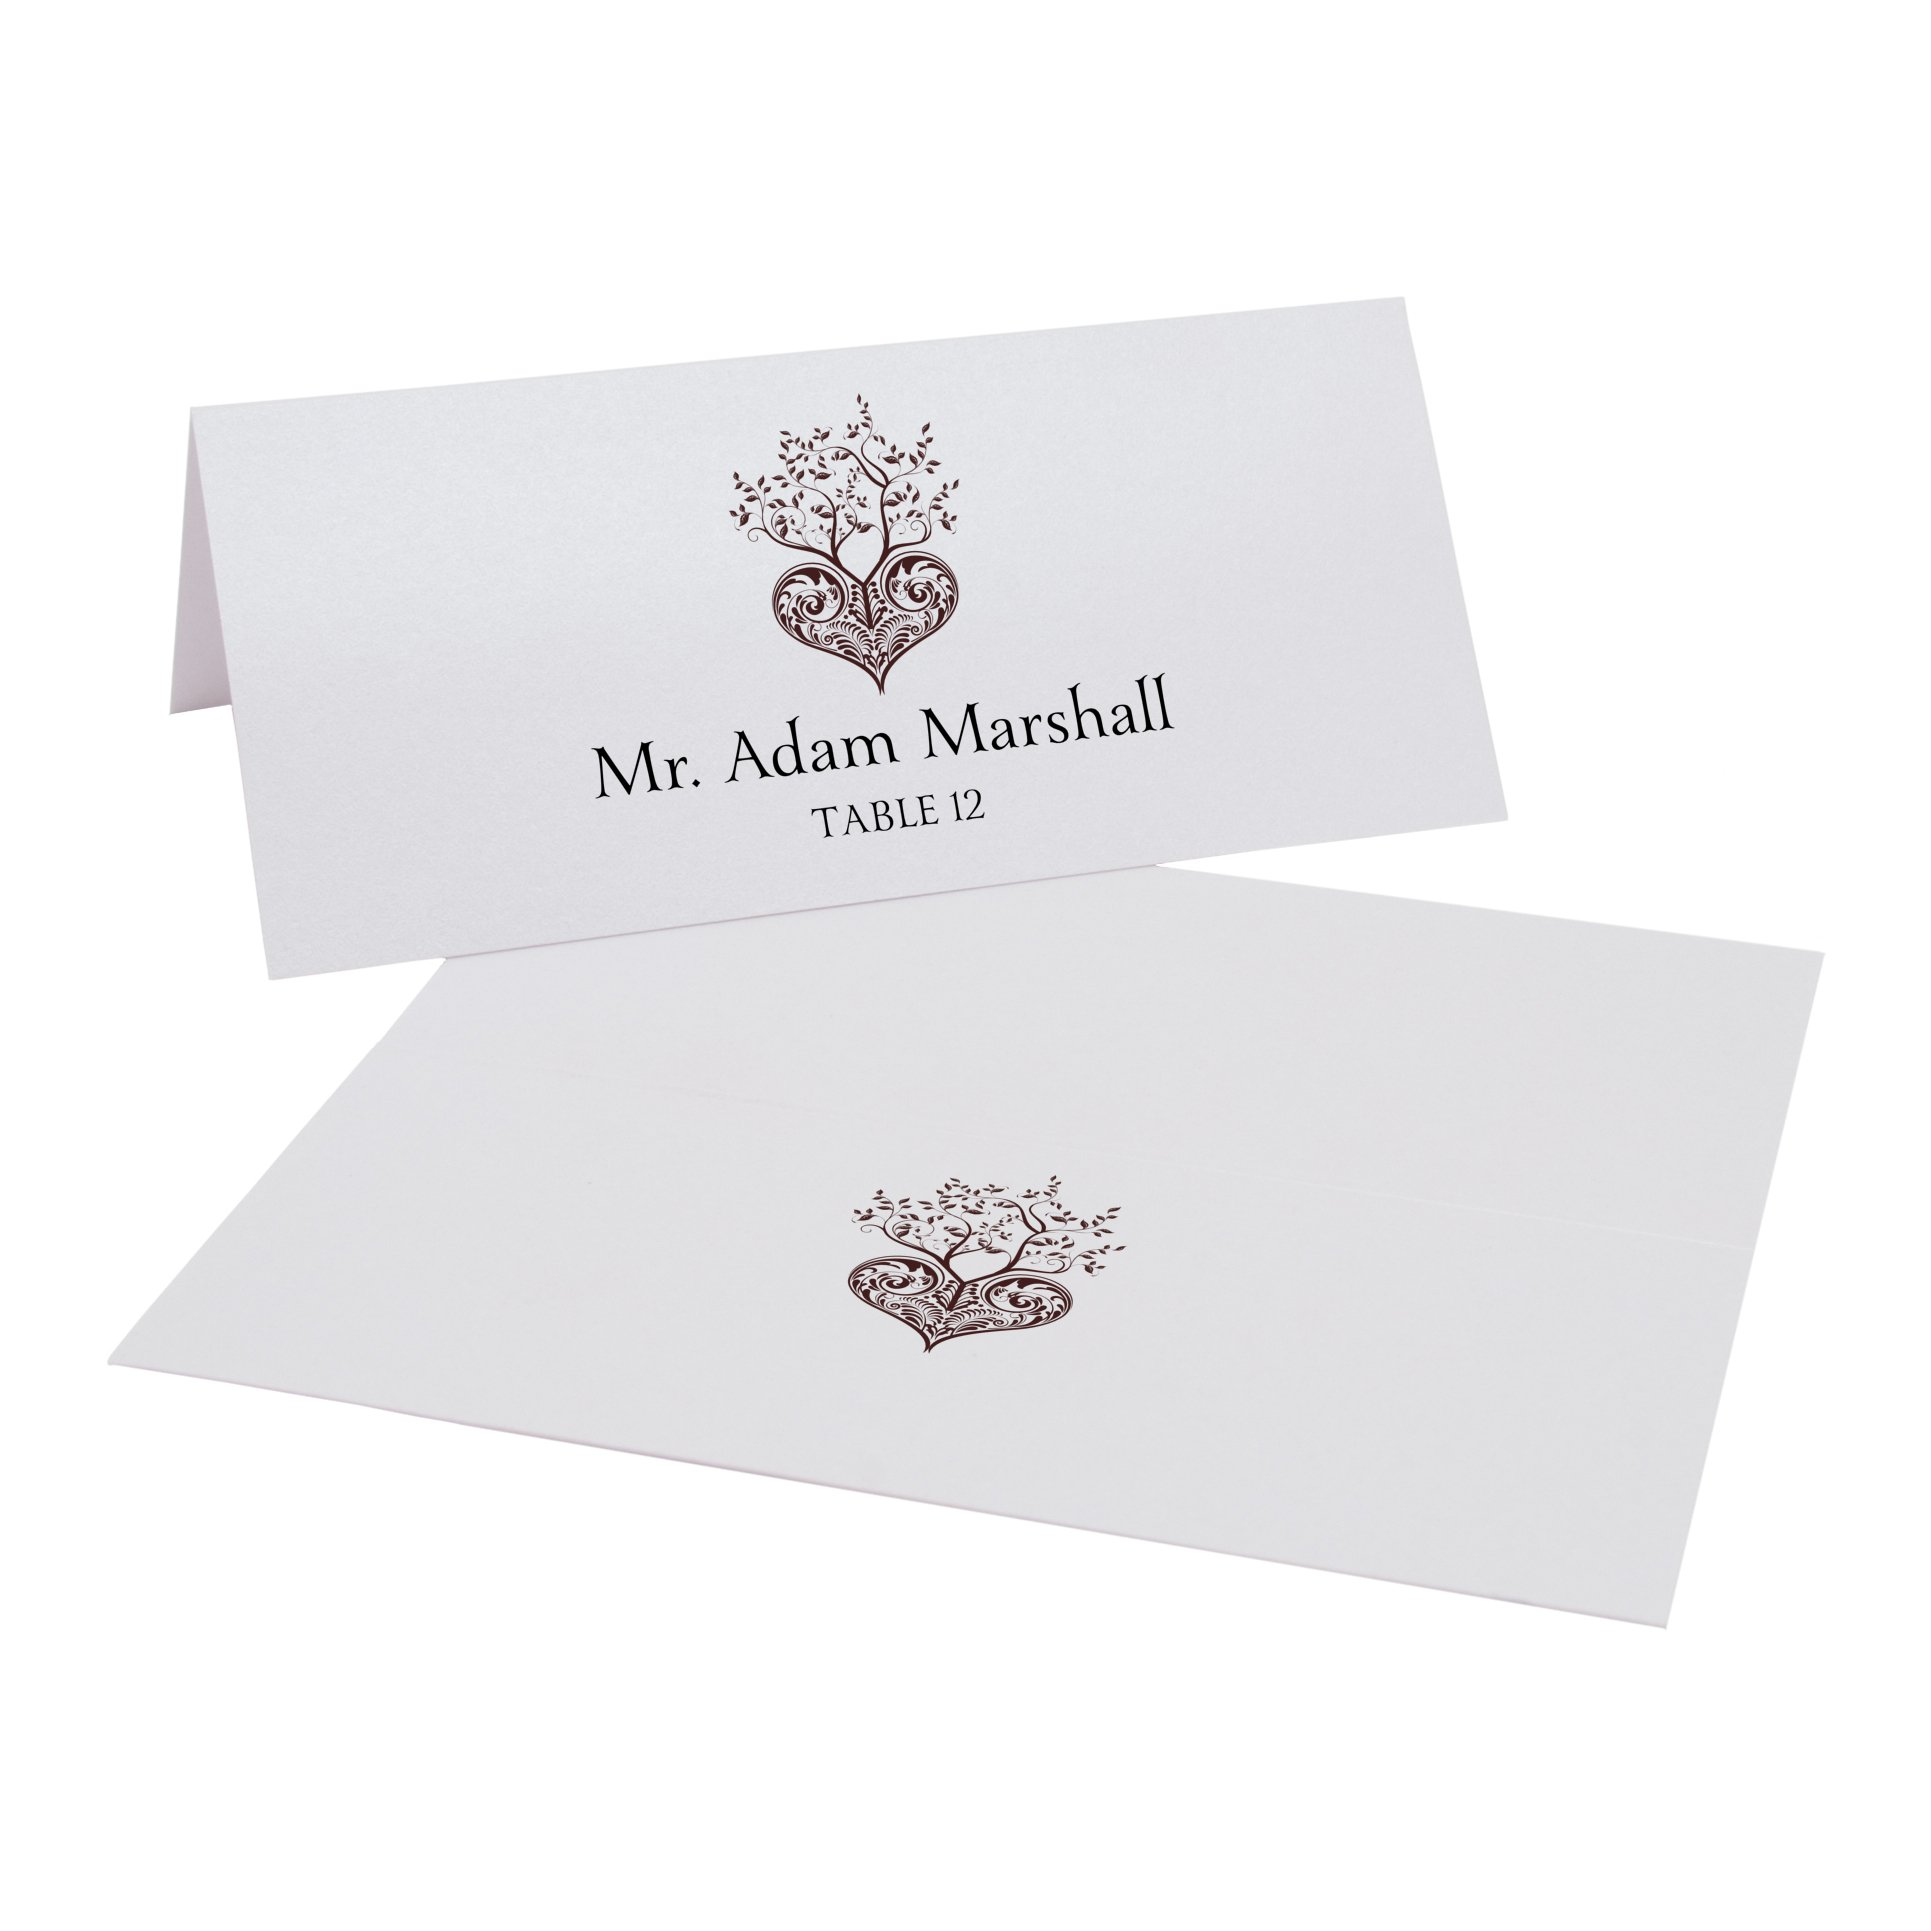 Tree of Life Heart Place Cards, Pearl White, Chocolate, Set of 375 by Documents and Designs